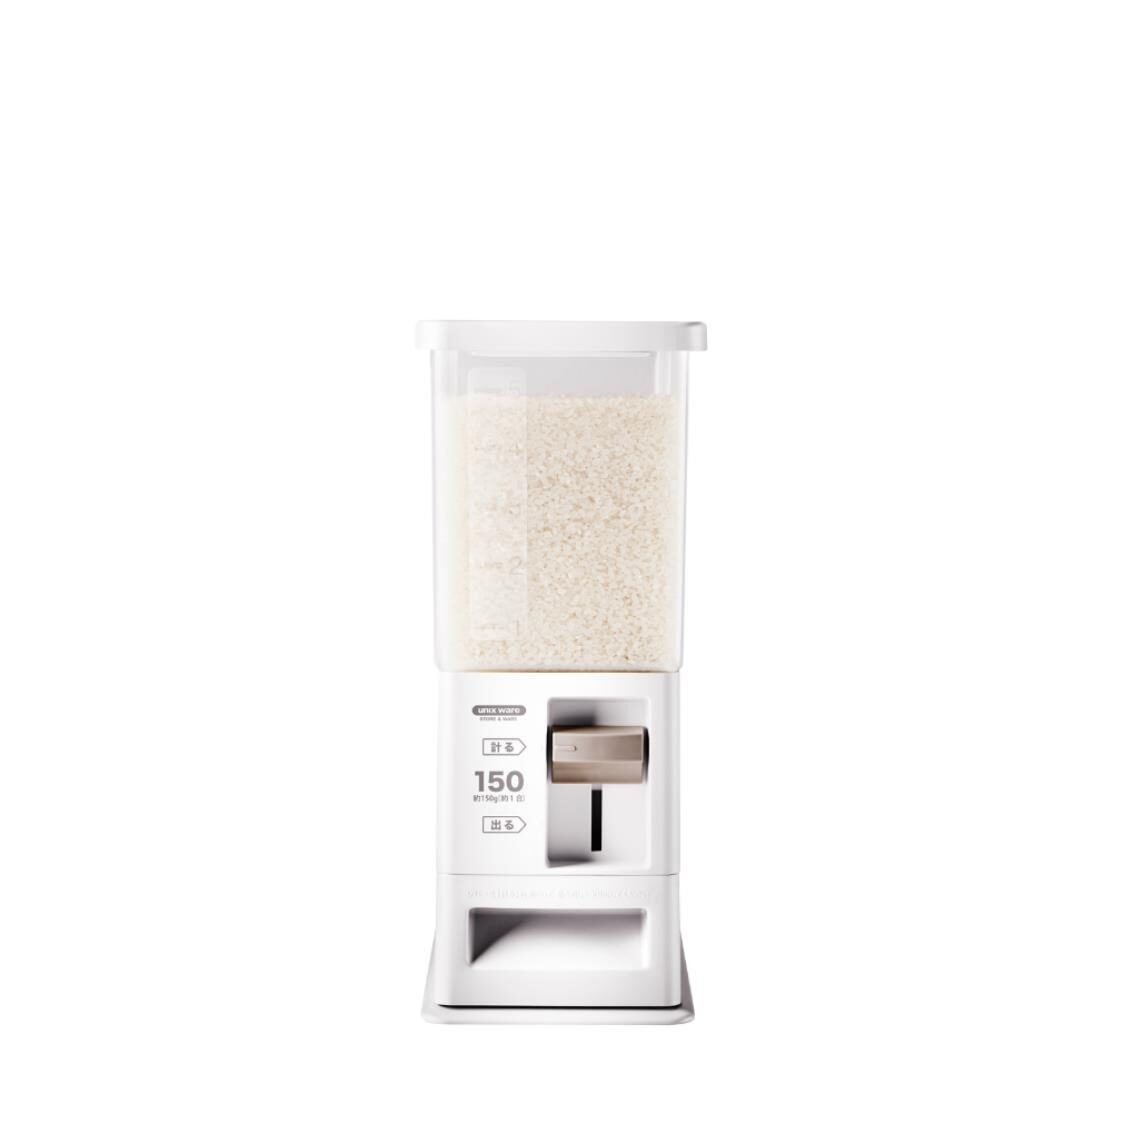 Unix Ware Rice Stocker White 6kg 7504